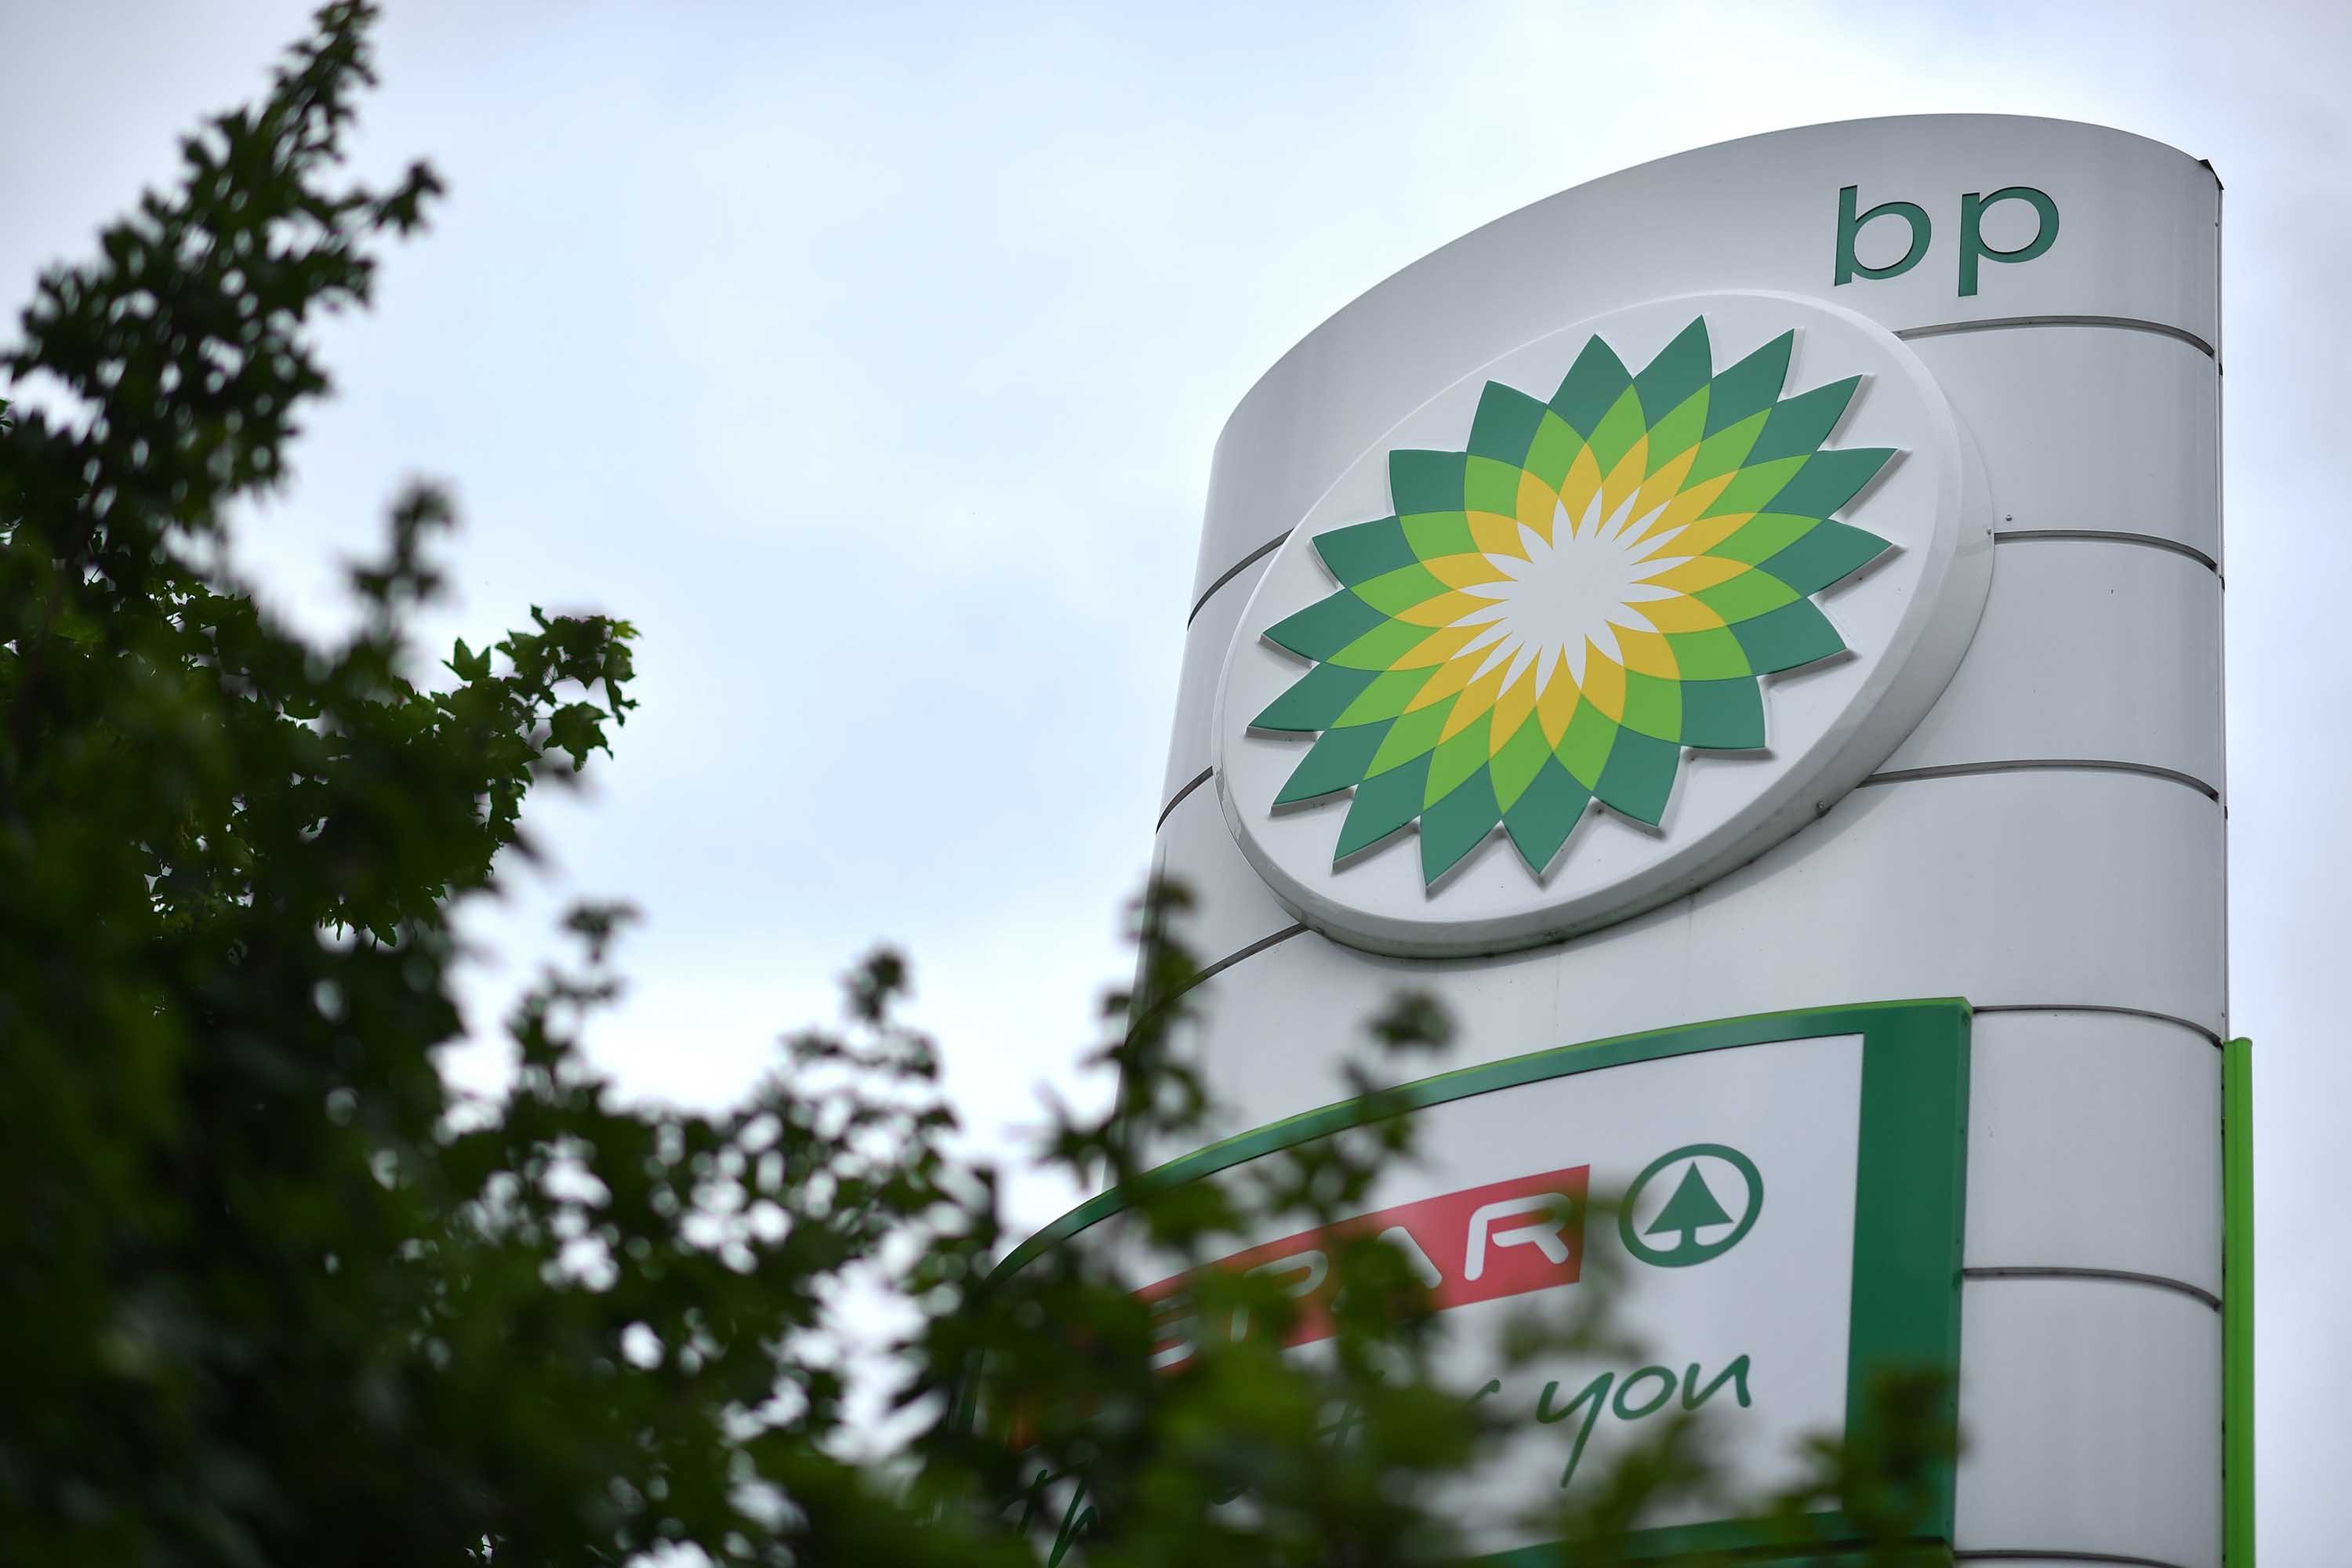 BP will slash oil production by 40% and pour billions into green energy